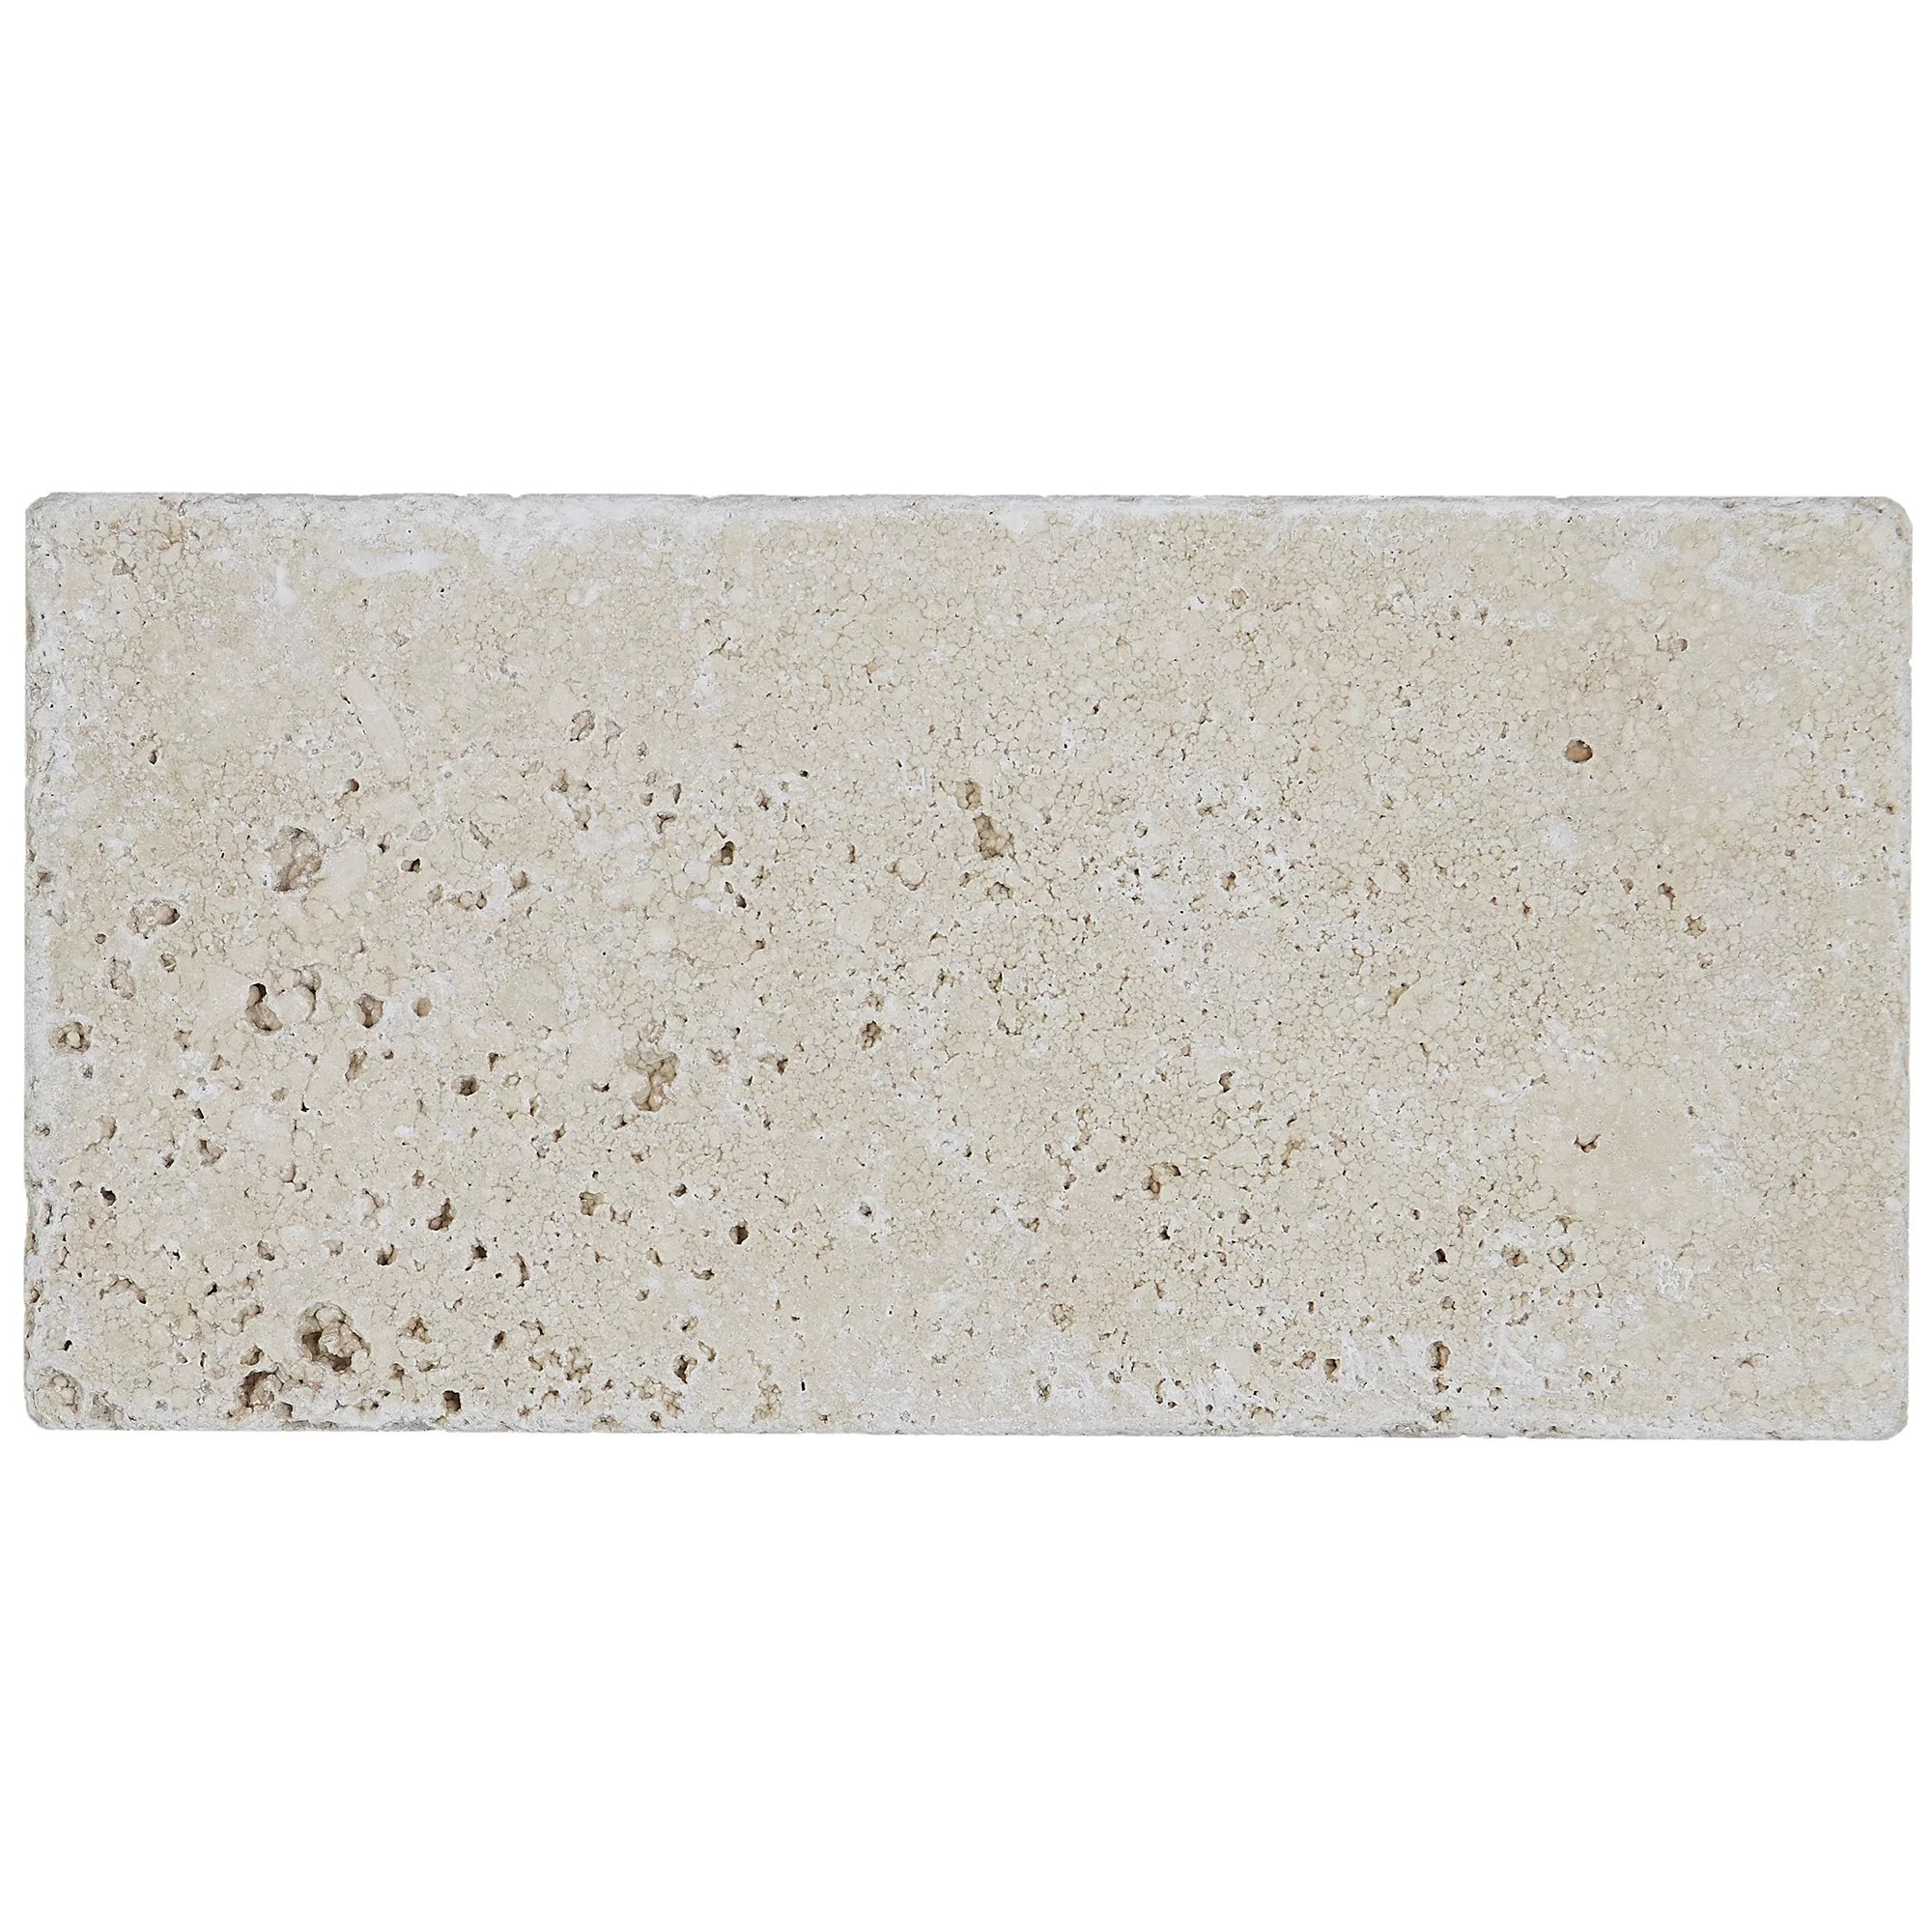 hopkins 3 x 6 natural stone subway tile in ivory classico